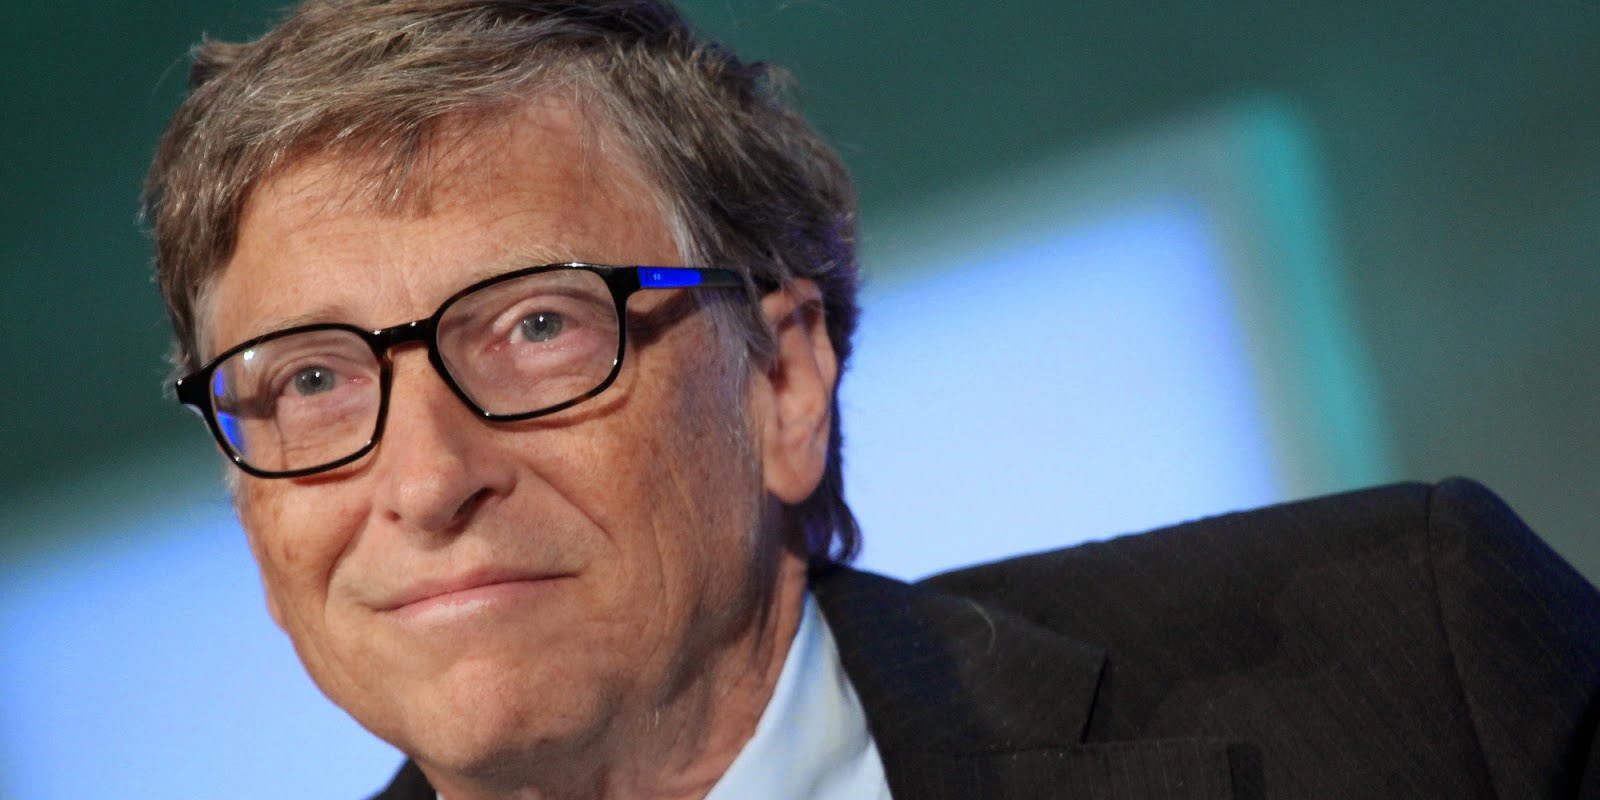 17 Inspirational Bill Gates Quotes